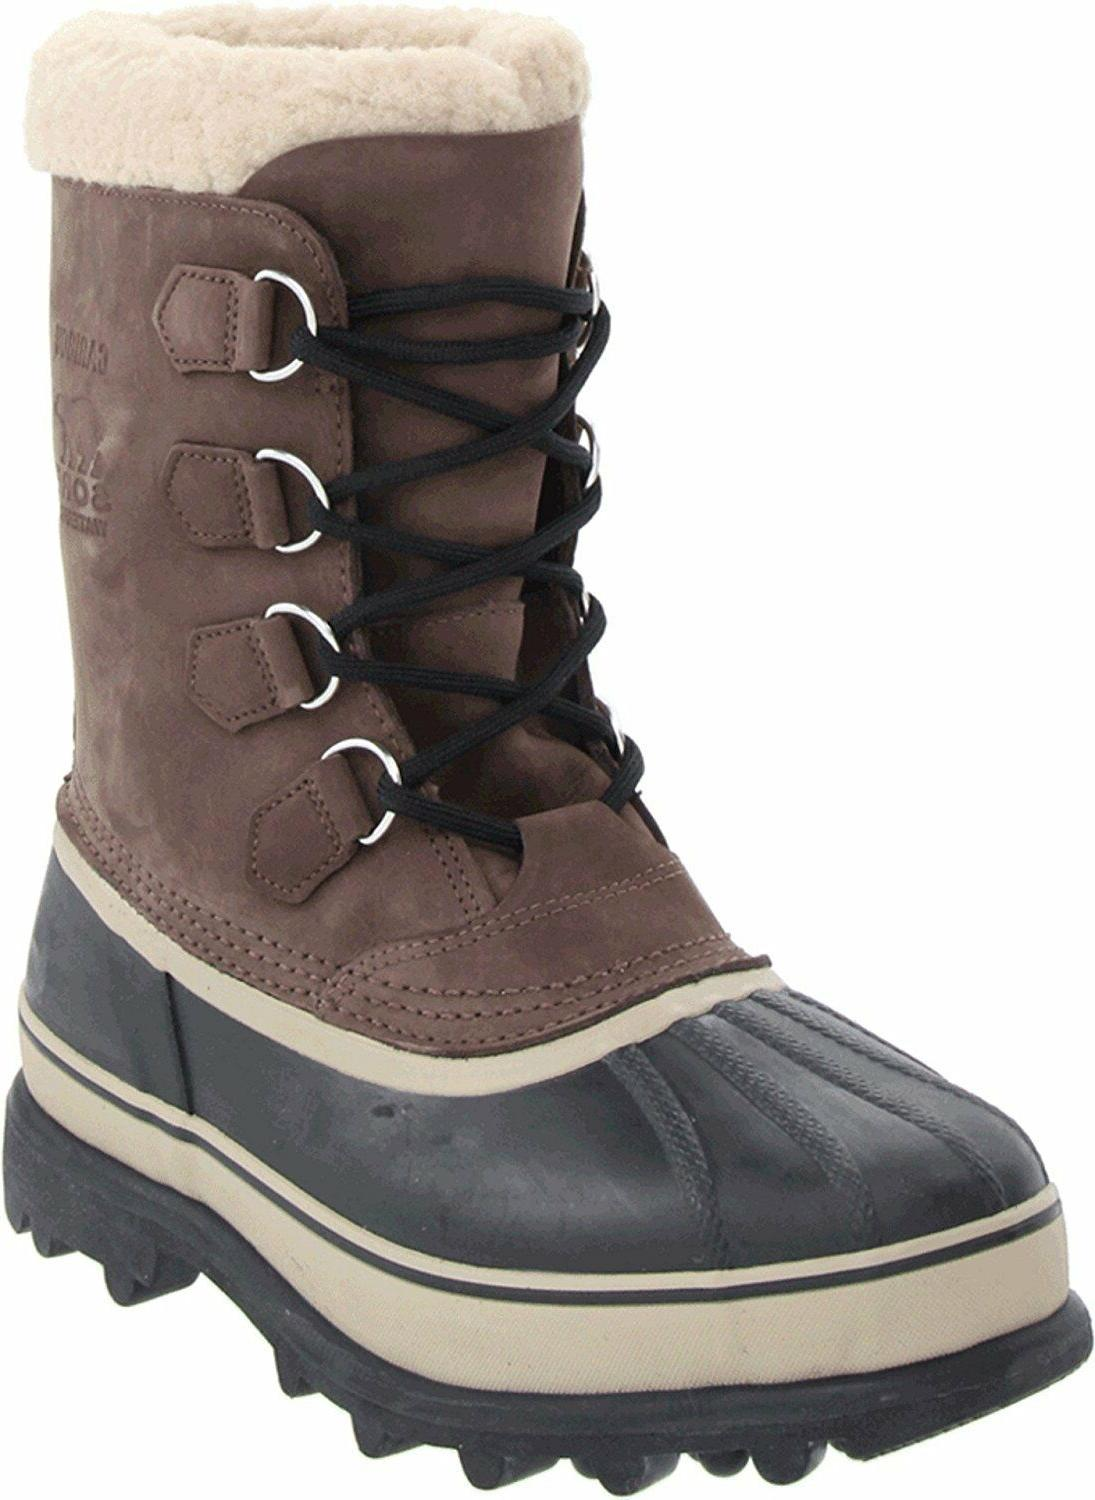 caribou boot